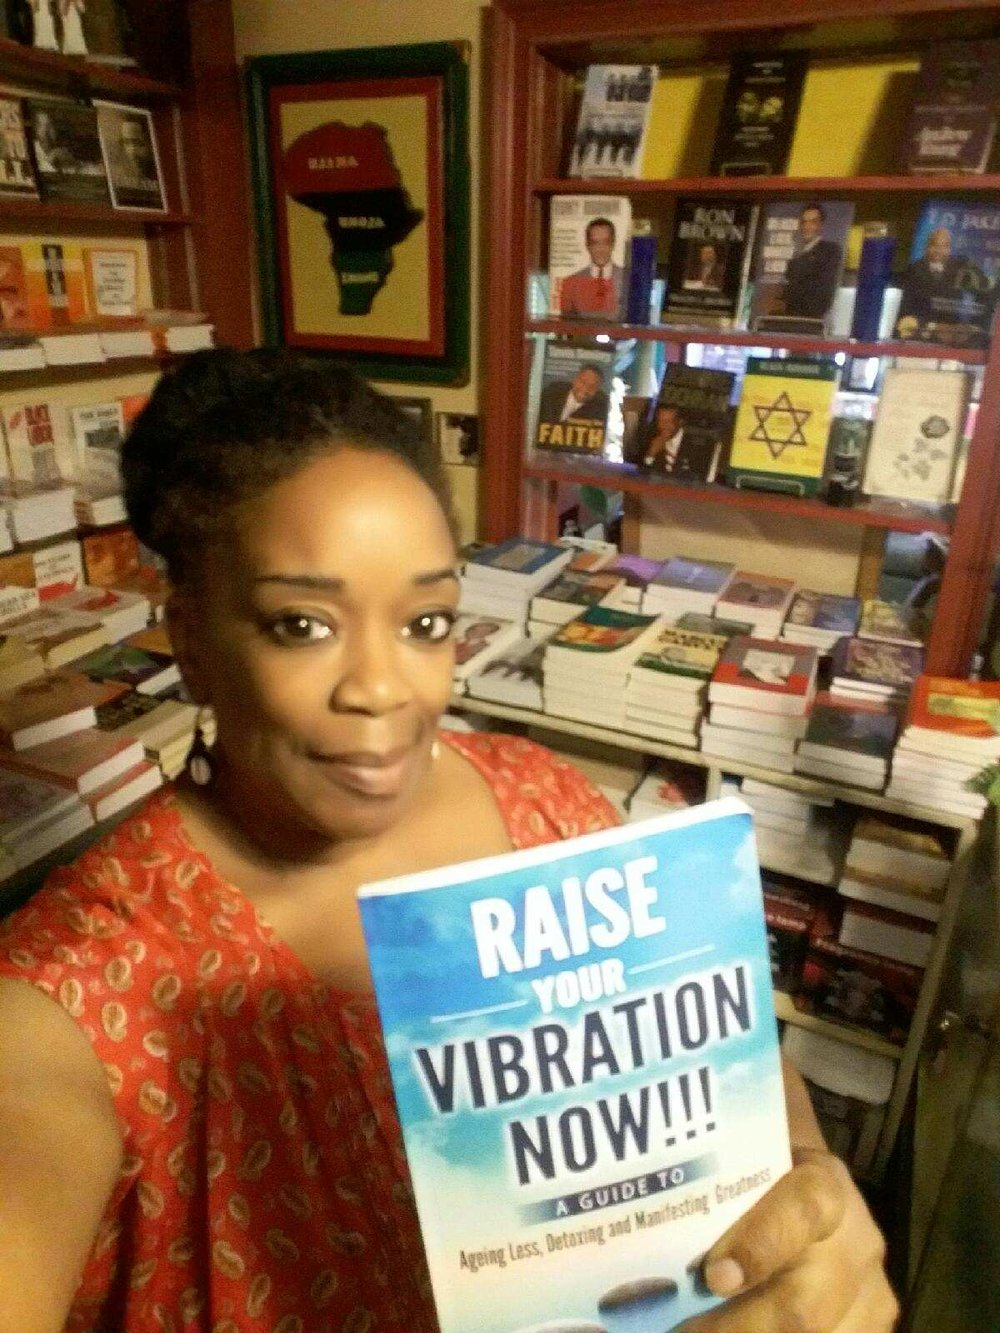 RAISE YOUR VIBRATION NOW BOOK READER 1.jpg